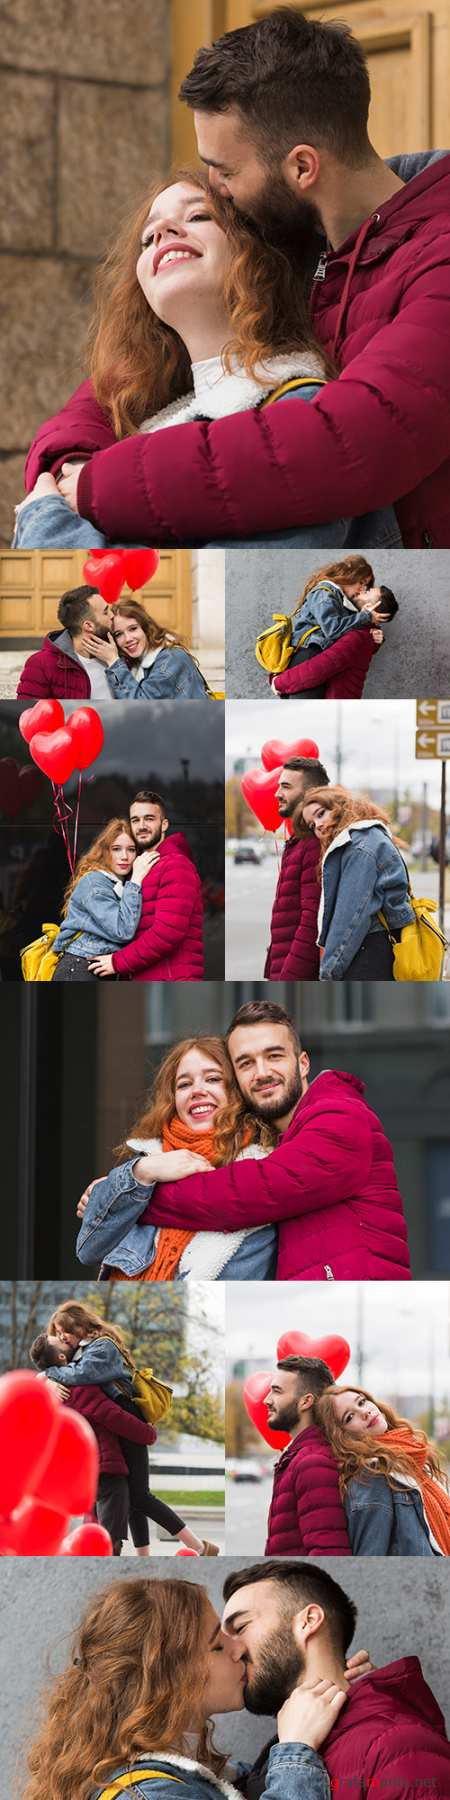 Falling in love and romantic couple on balloon walk